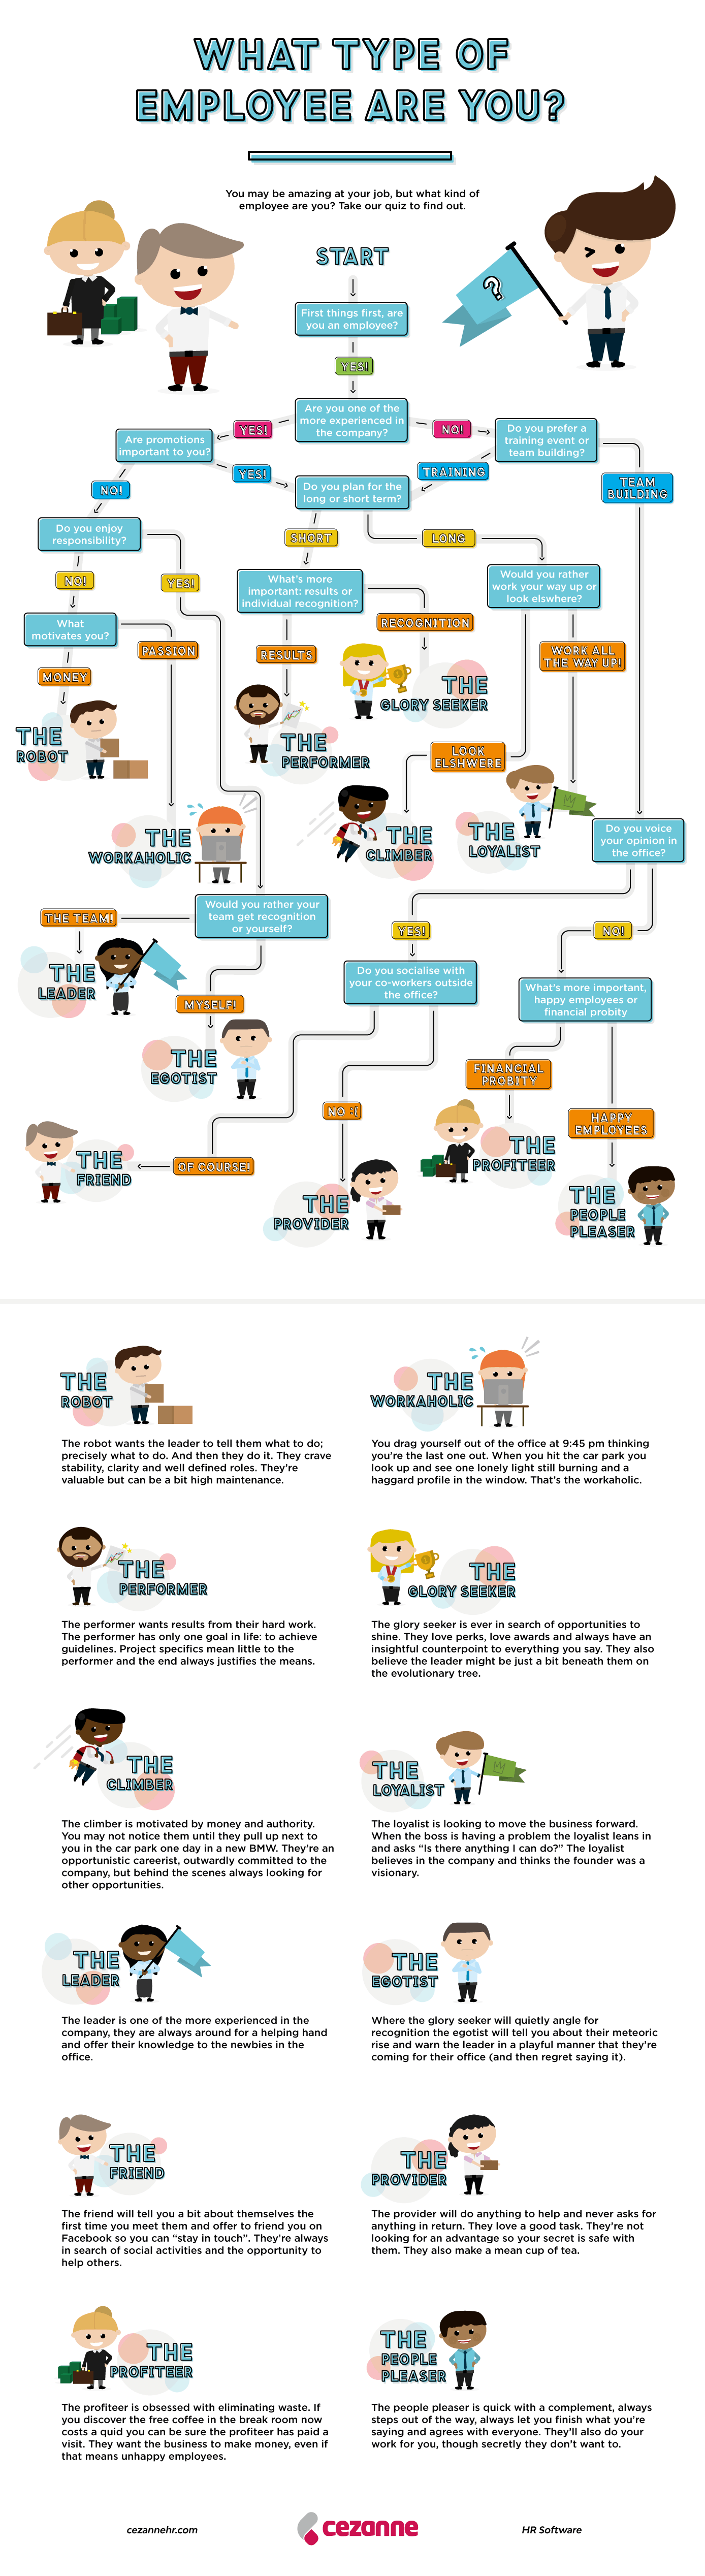 What type of employee are you - What Type Of Employee Are You?